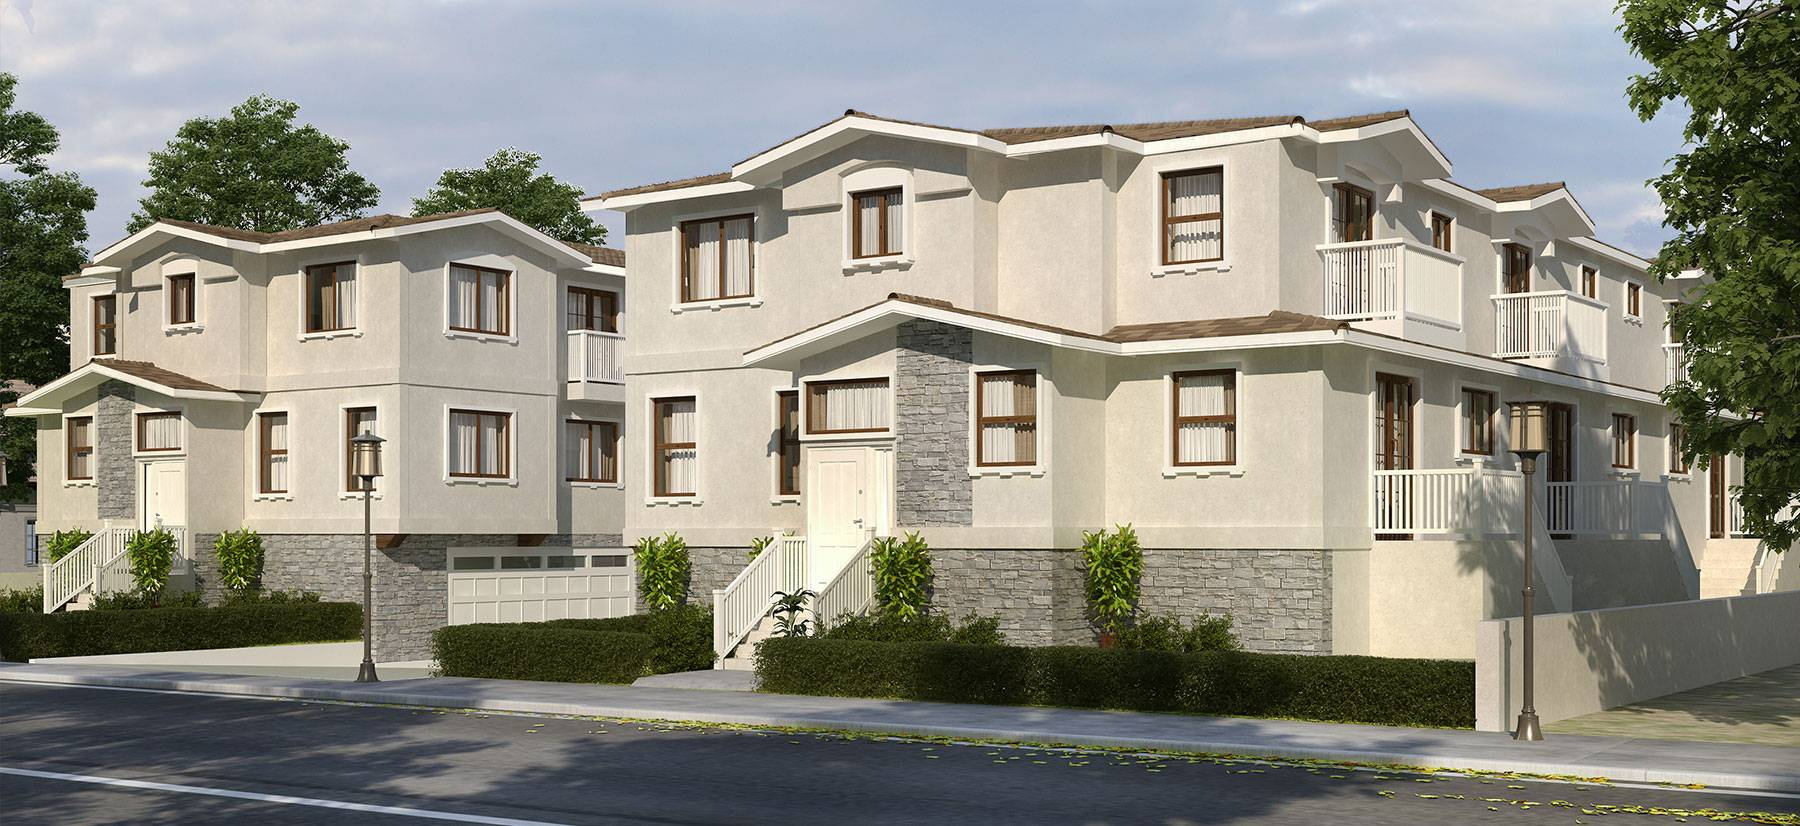 sample multi-family housing project by the City government